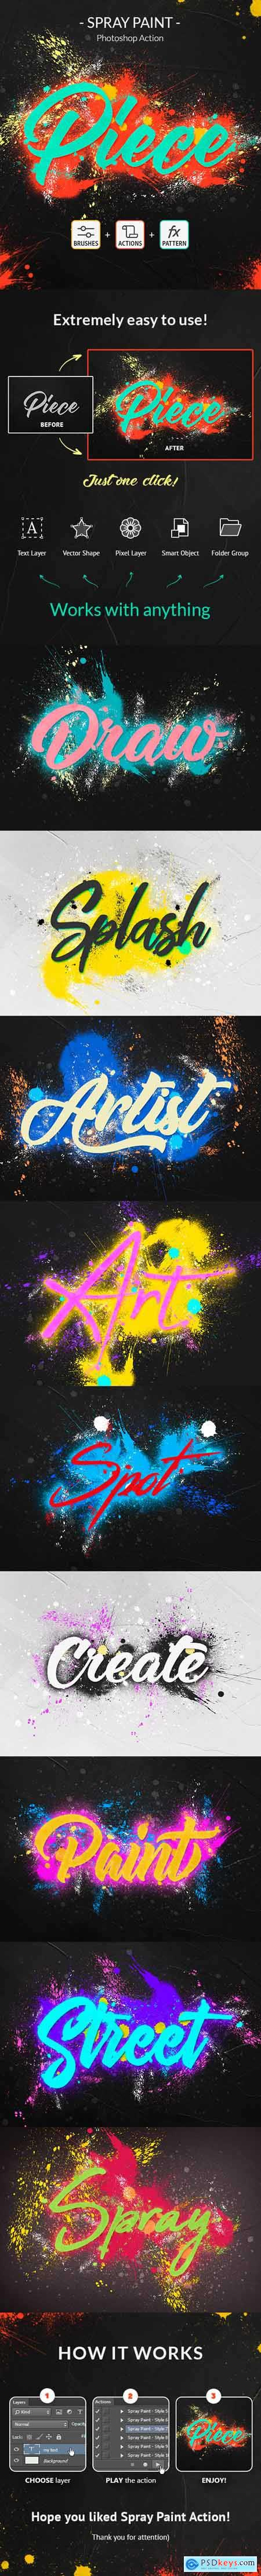 Spray Paint Photoshop Action 24380797